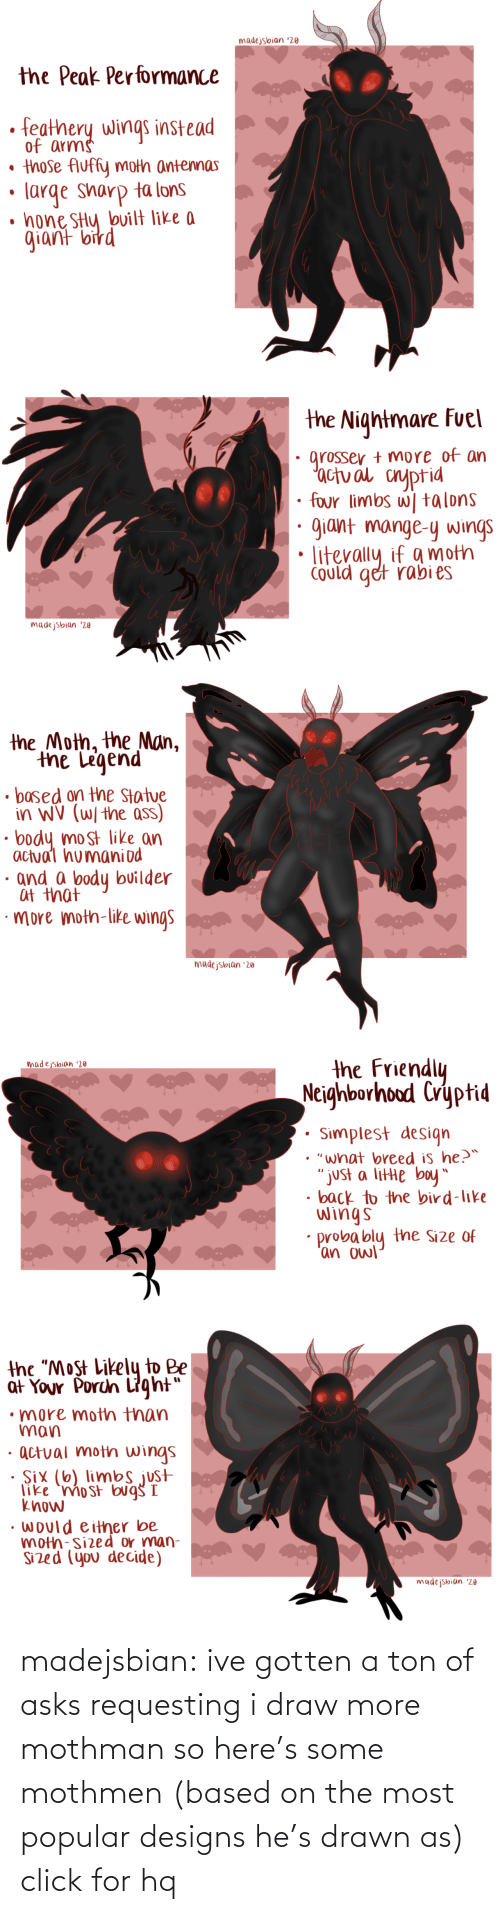 "the man: madejsbian '20  the Peak Performance  feathery wings instead  of arms  • those Auffy moth antennas  large sharp ta lons  • hone SHy bvilt like a  giant bird   the Nightmare Fuel  grosser + more of an  'actual cnyptid  four limbs w| talons  giant mange-y wings  Could get rabi es  madejsbian '20   the Moth, the Man,  the Legend  • based on the Statue  in WV (W/ the ass)  body most like an  actual humaniod  · and a body builder  at that  ·more moth-like wings  madejsbian '20   the Friendly  Neighborhood Cryptid  madejsbian '20  Simplest design  • ""what breed is he?™  ""just a litte boy""  • back to the bird-like  wings  probably the Size of  'an owl   the ""Most Likely to Be  at Your Porch Light""  •more moth than  man  · actual moth wings  · Six (6) limbs just  like 'mo st bug I  know  • would either be  moth-sized or man-  Sized (you decide)  madejsbian '20 madejsbian: ive gotten a ton of asks requesting i draw more mothman so here's some mothmen (based on the most popular designs he's drawn as)